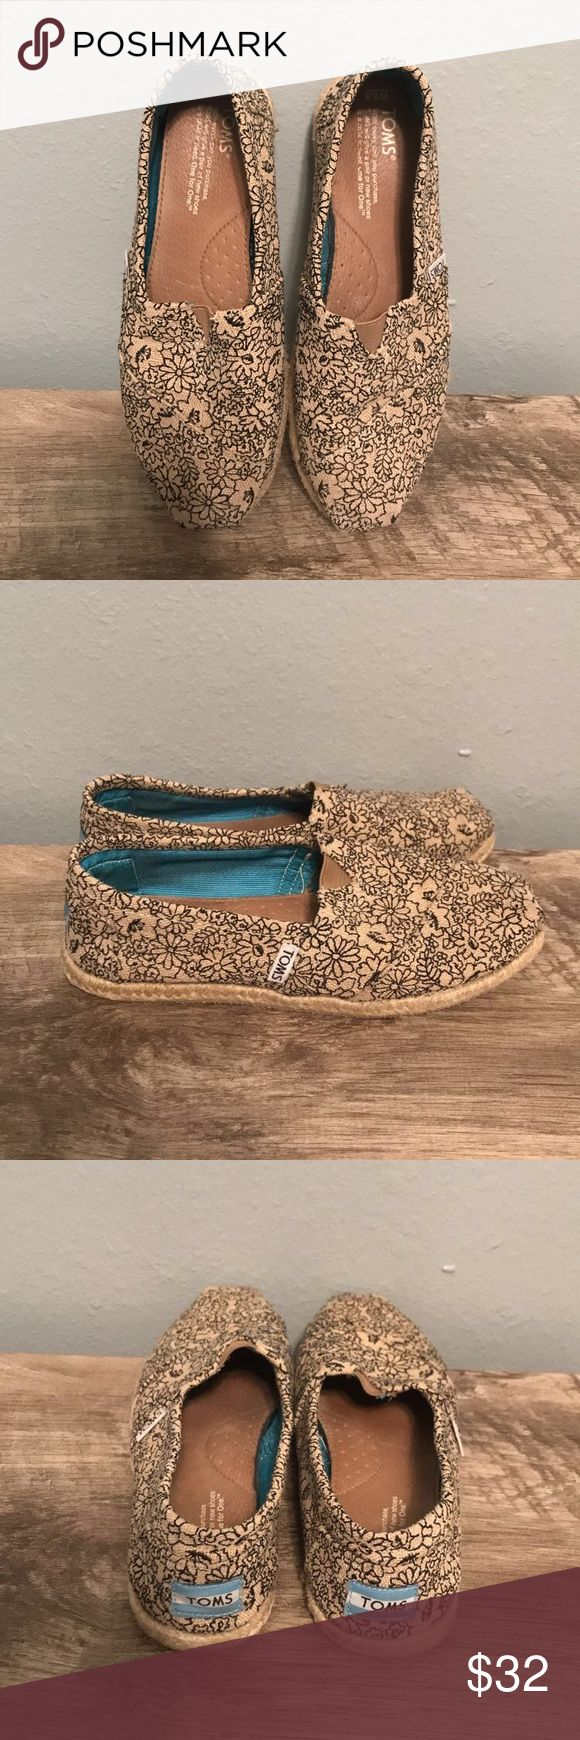 Women's Floral Toms gently used floral toms. Bundle.🌻 Toms Shoes Flats & Loafers